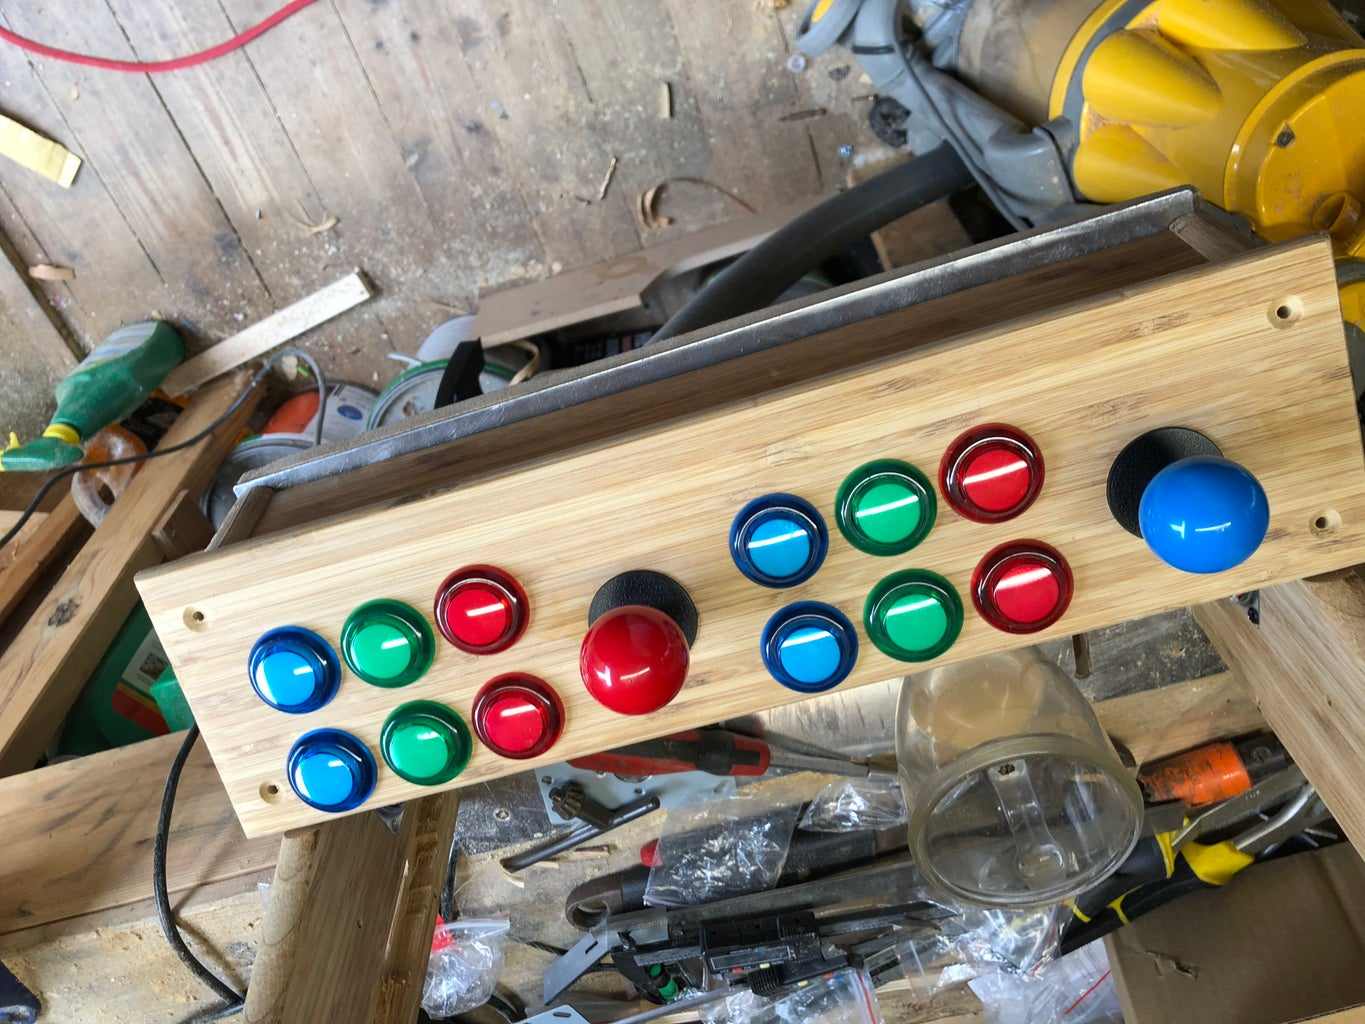 Cut the Holes for the Joysticks and Buttons